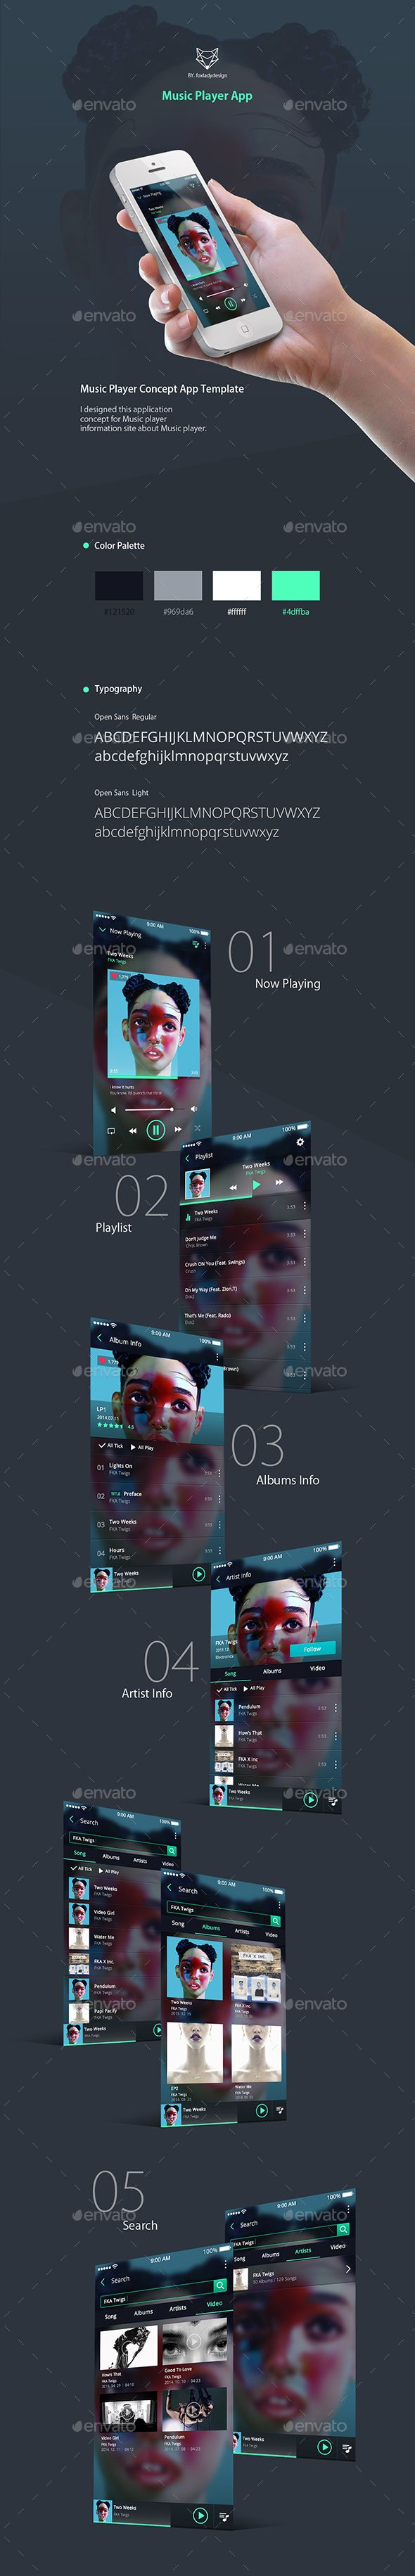 Music Player App Design UI/UX- User Interfaces Web Template PSD. Download here: http://graphicriver.net/item/music-player-app/16543839?ref=yinkira